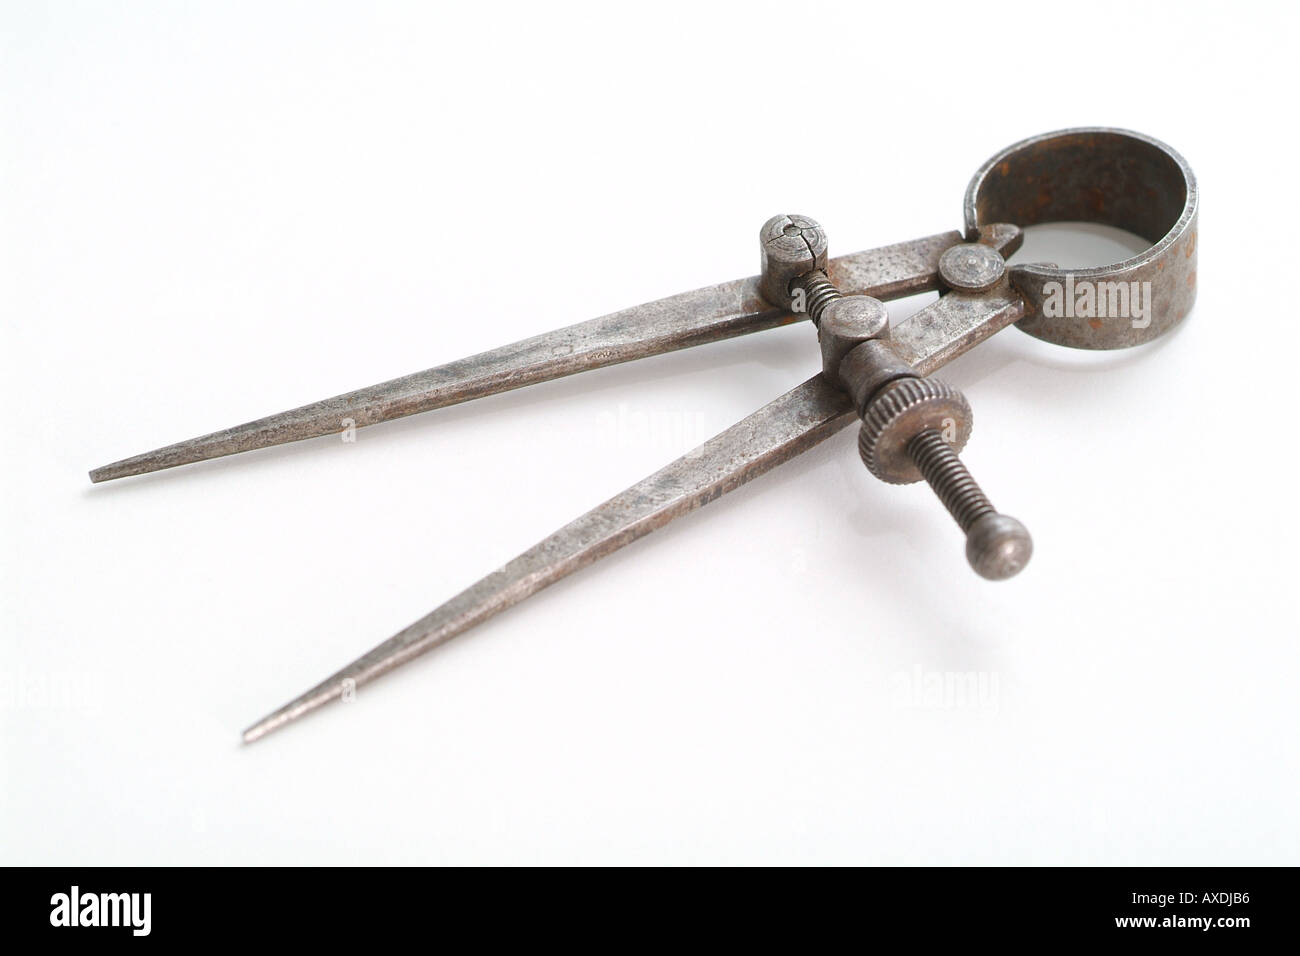 Antique Drafting Tool on White Background compass - Stock Image